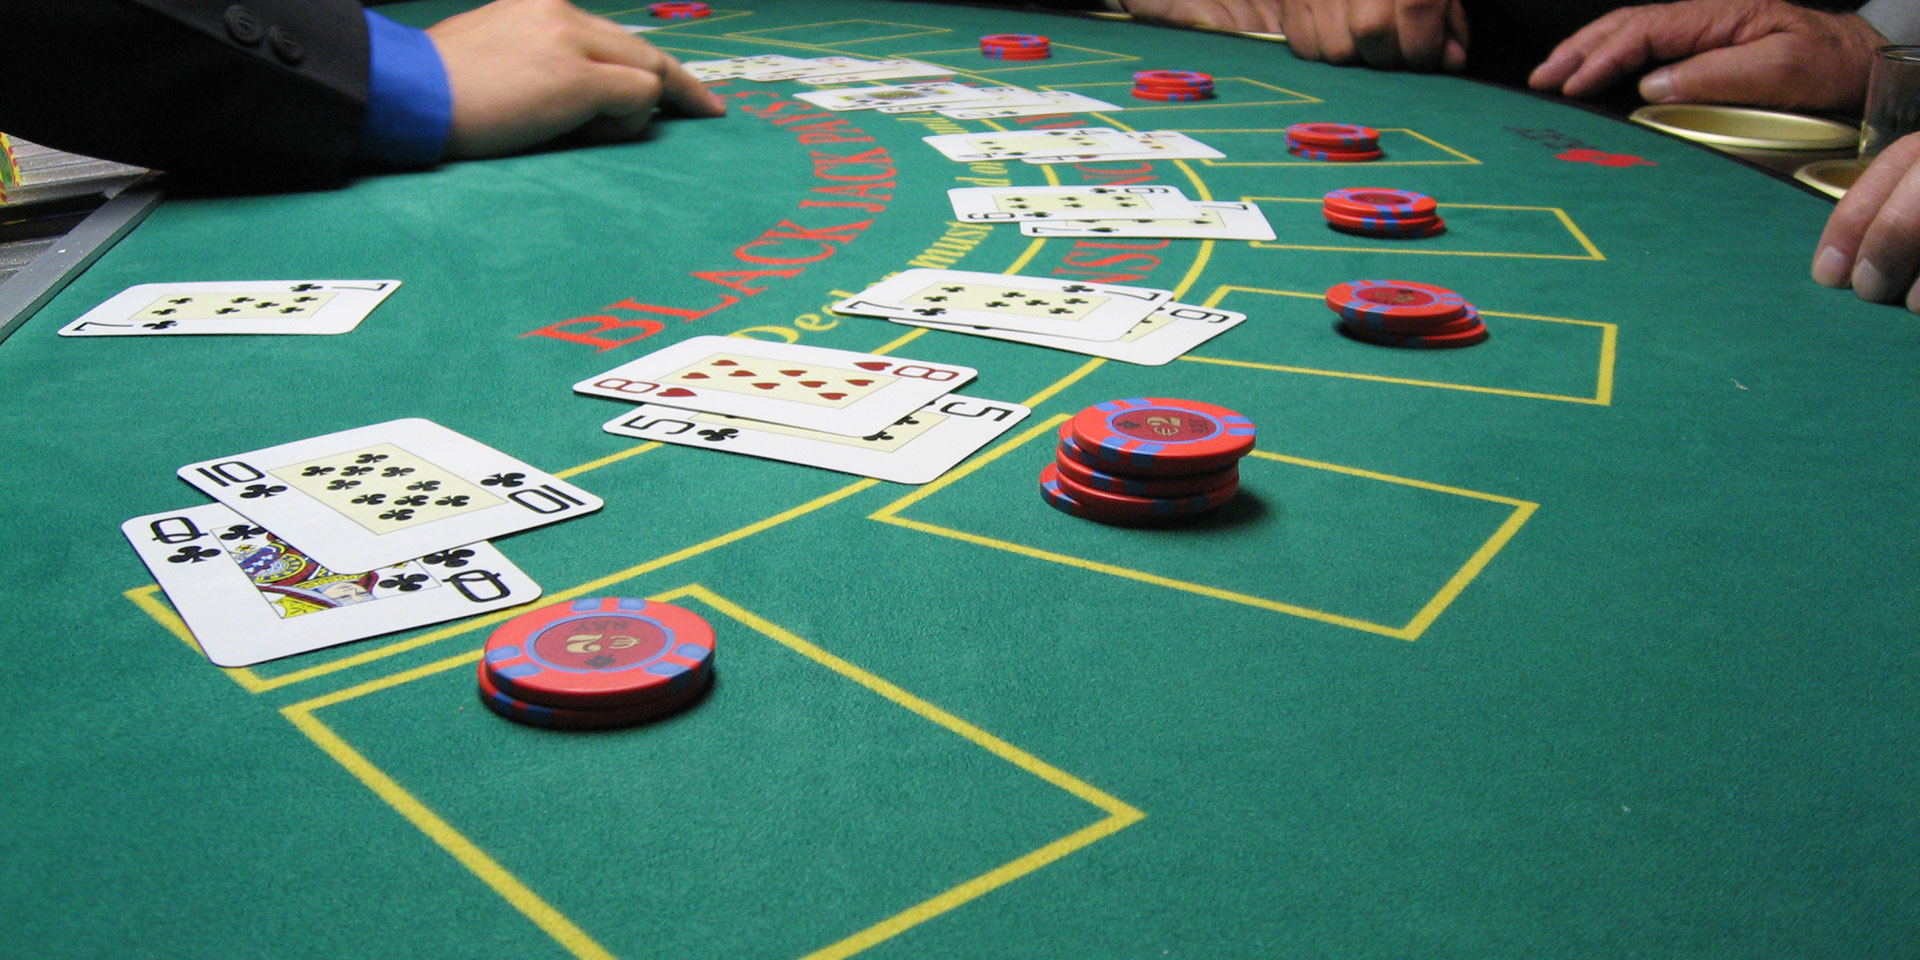 Casino table games development newest form of gambling in north carolina